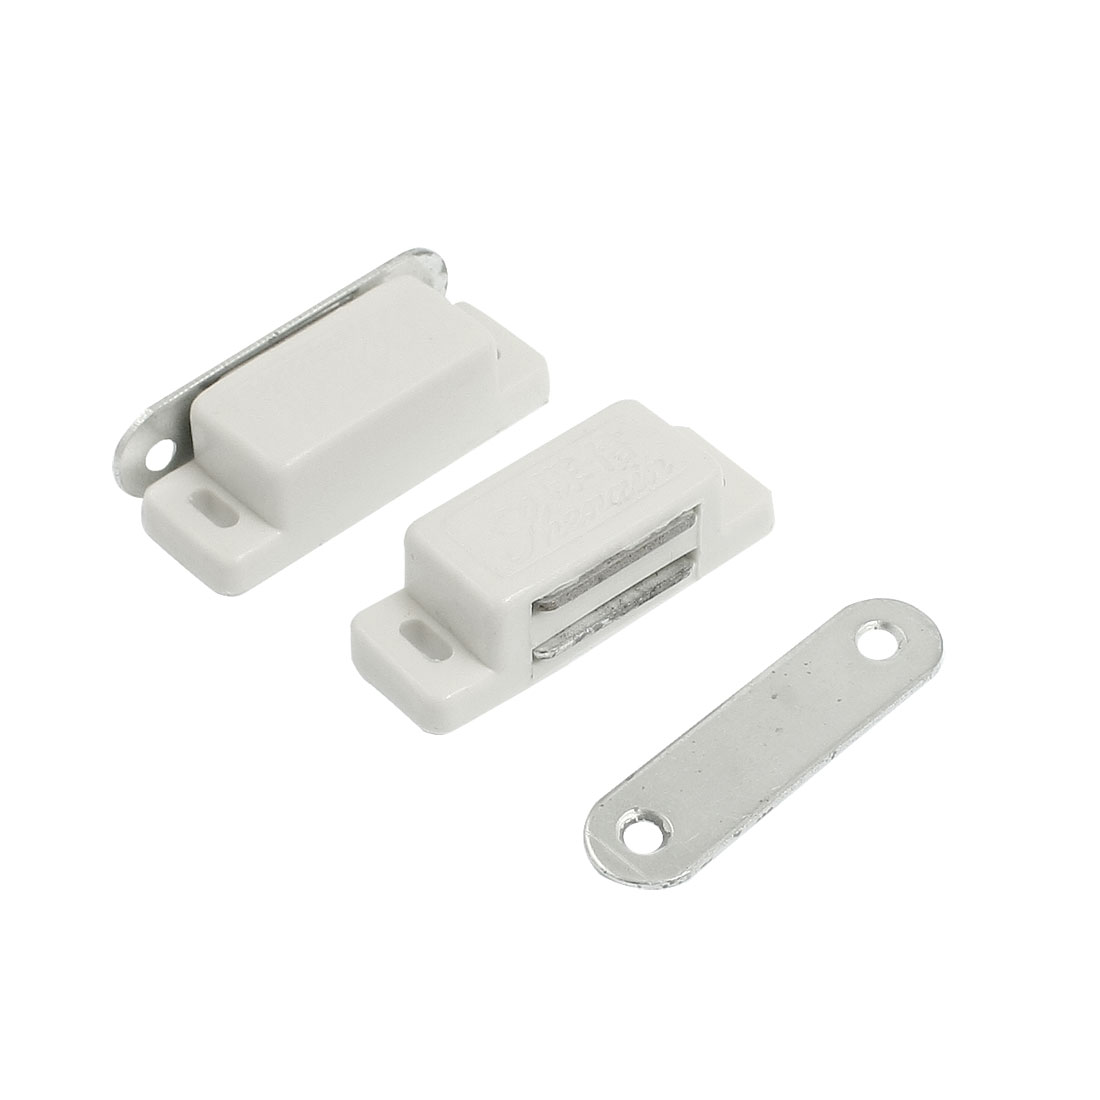 Pair Cupboard Cabinet Doors Plastic Magnetic Catch Latch White 1.8""